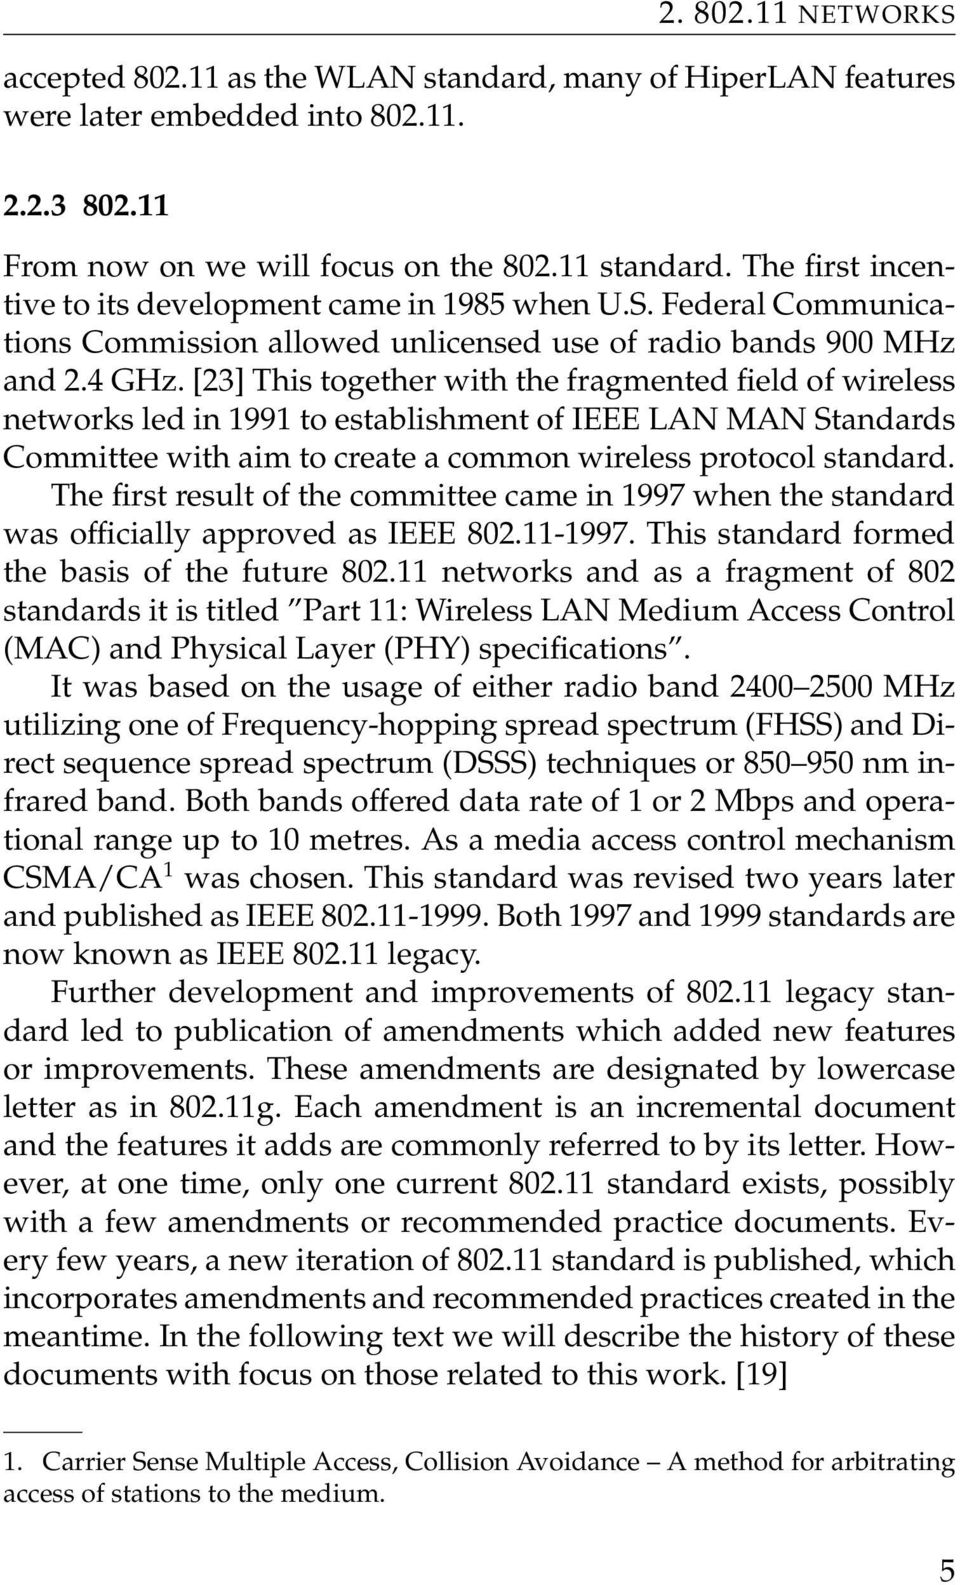 [23] This together with the fragmented field of wireless networks led in 1991 to establishment of IEEE LAN MAN Standards Committee with aim to create a common wireless protocol standard.